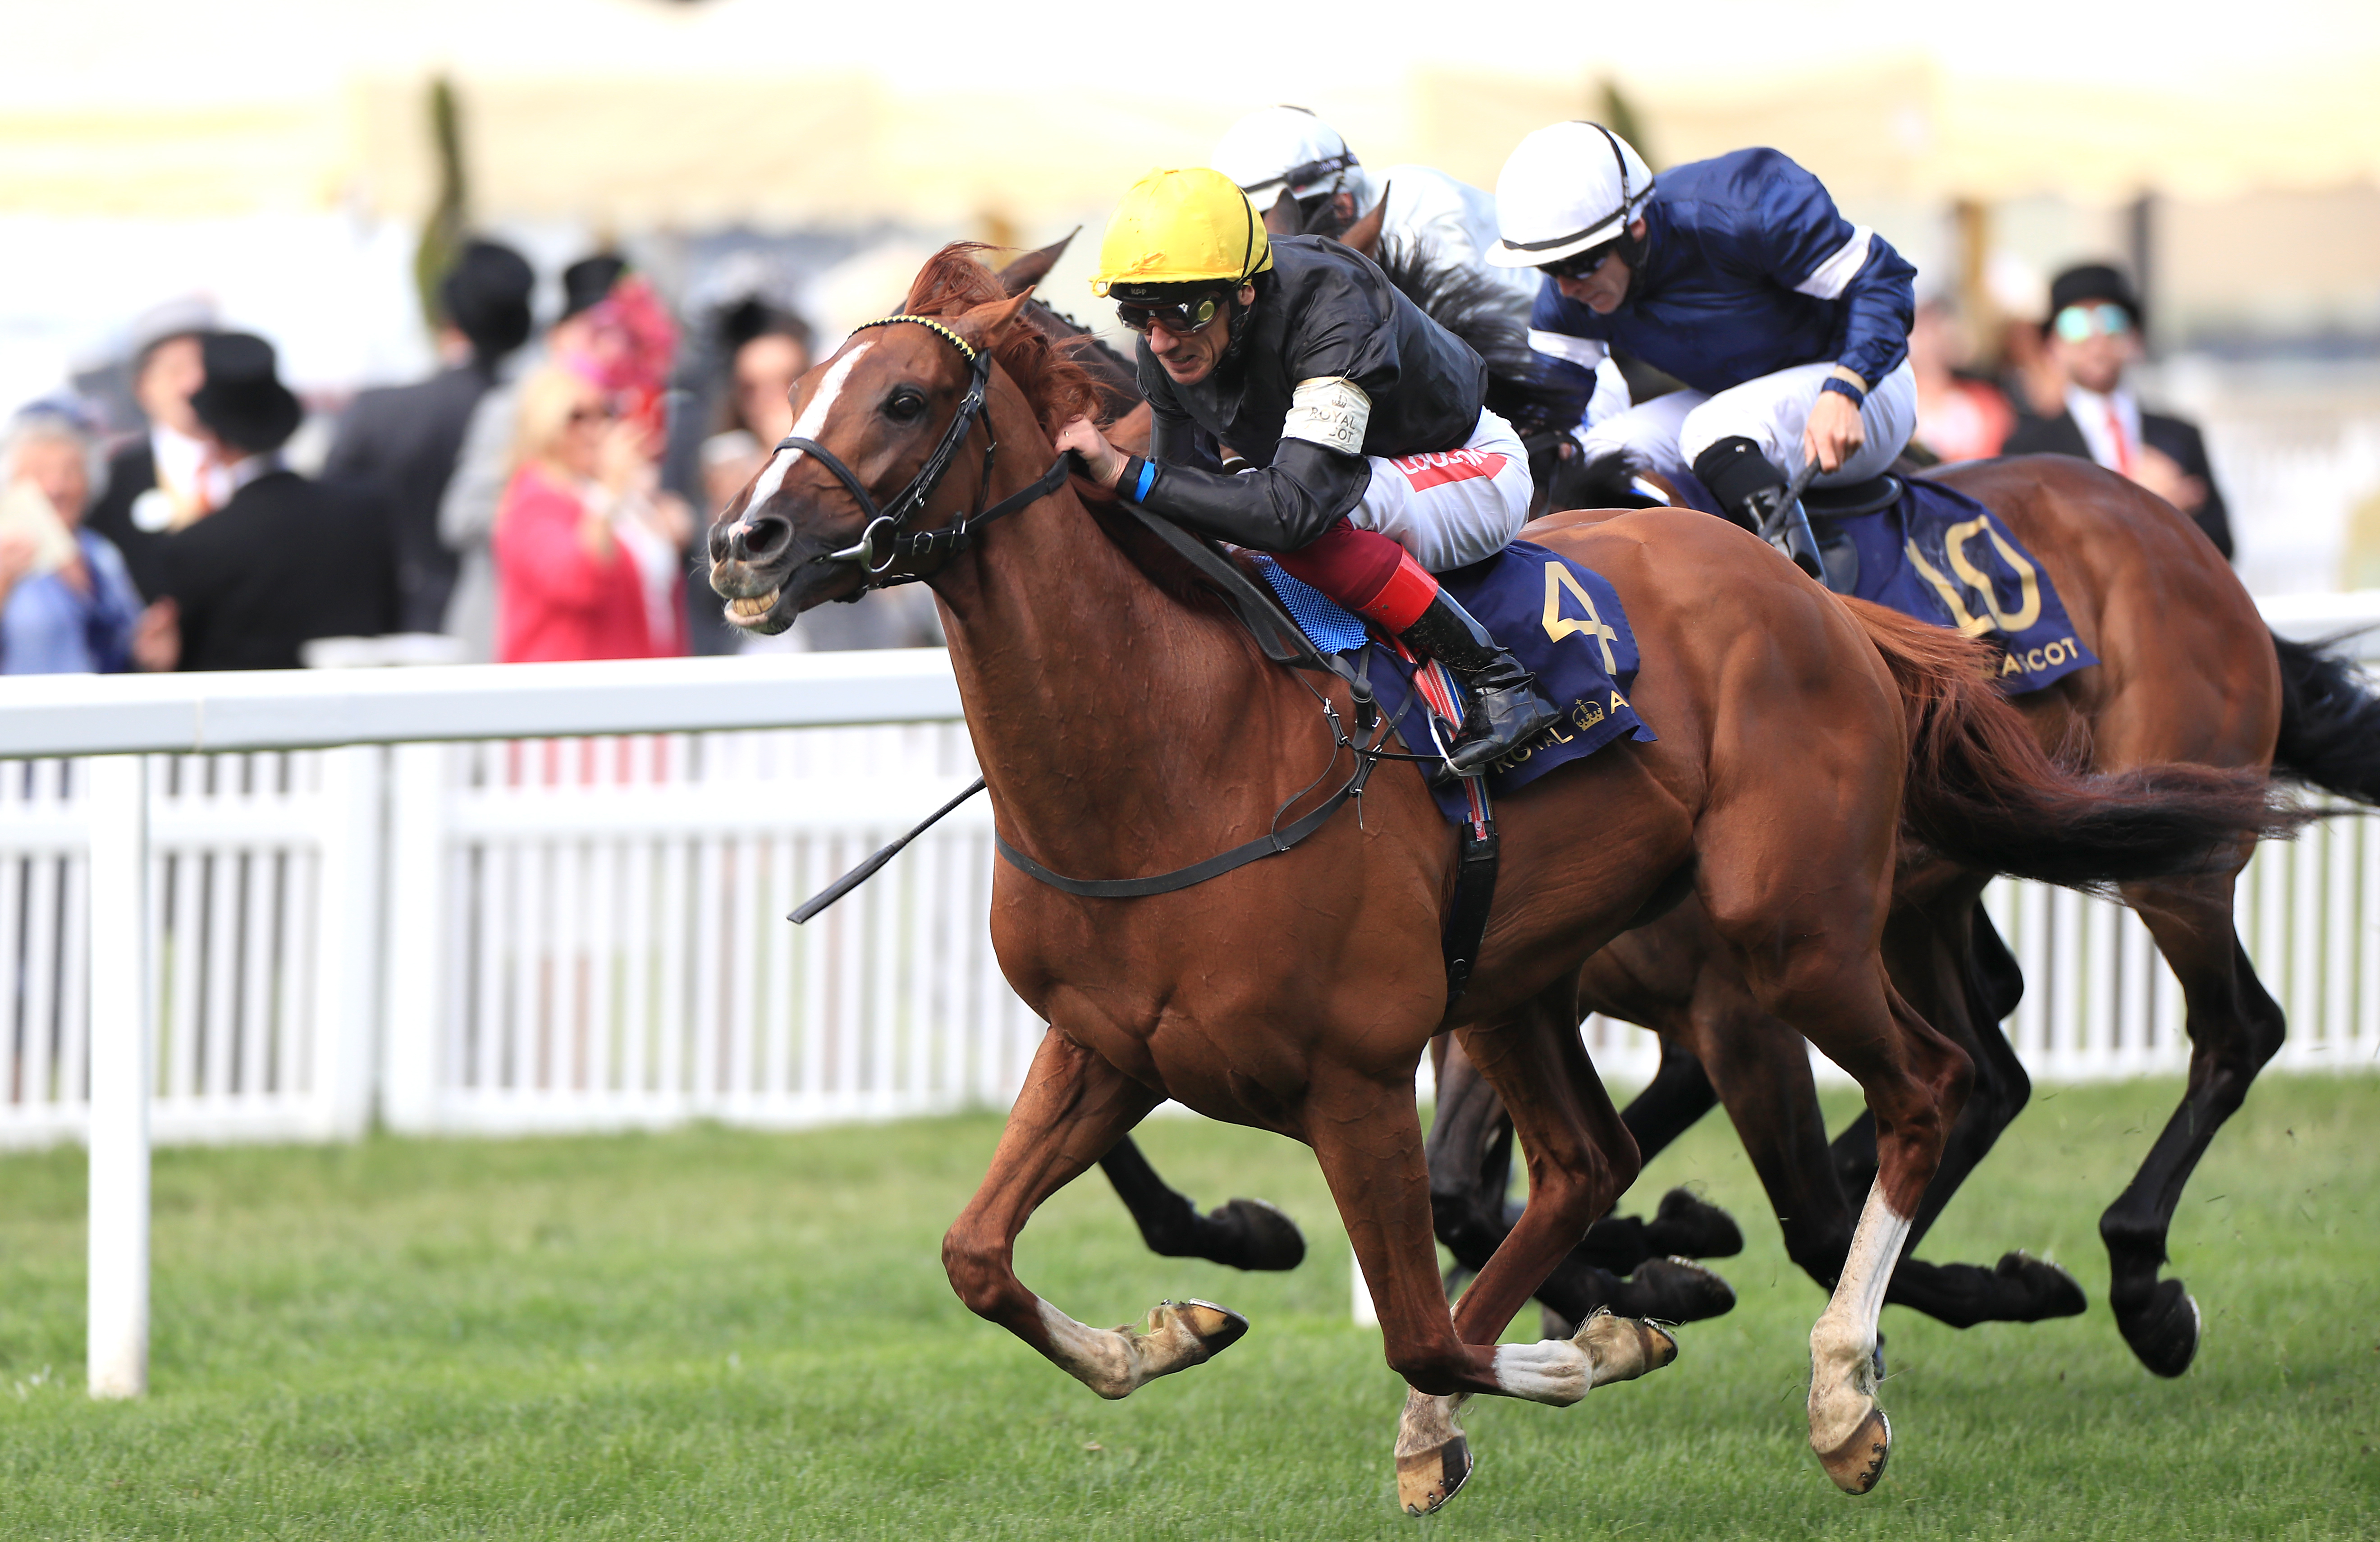 Stradivarius defended his Gold Cup title on a thrilling Thursday at Ascot